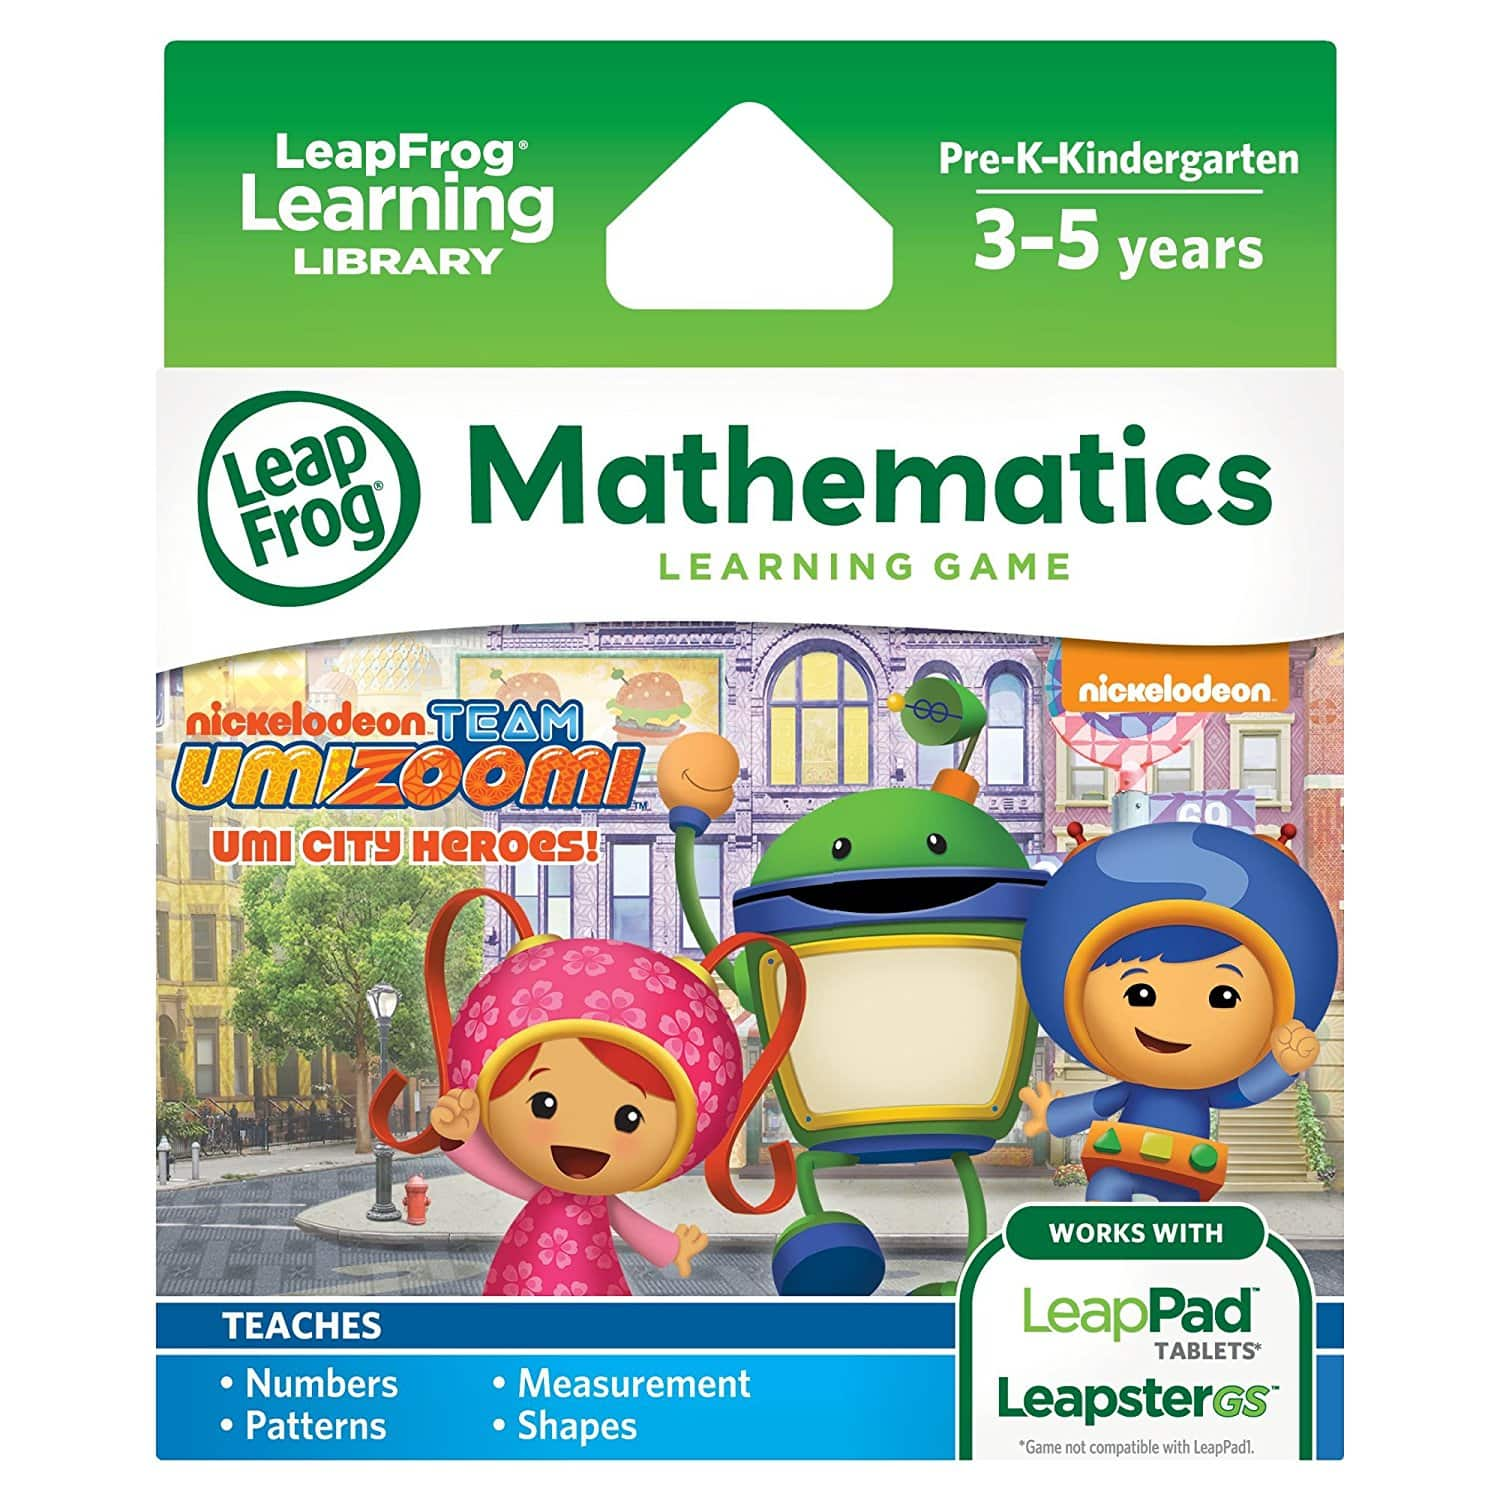 LeapFrog Team Umizoomi Learning Game PLUS $1 Digital Credit for No Rush Shipping Prime Members $1.99